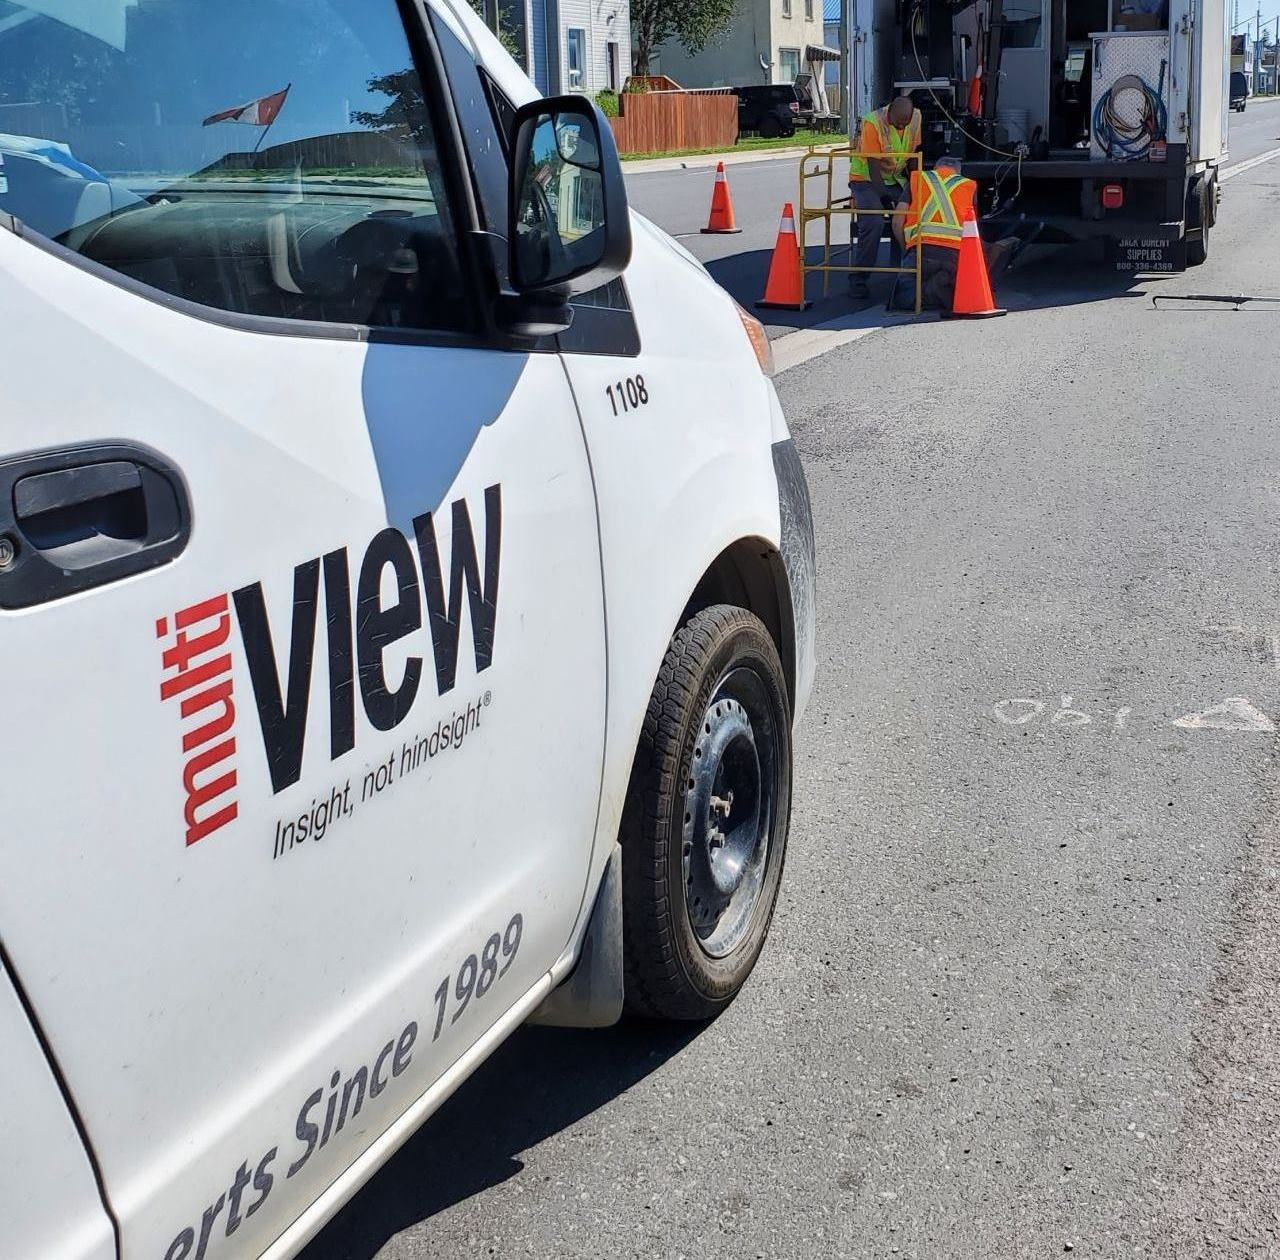 CCTV Pipe & Sewer Inspection Services  NASSCO-certified expertise to inspect and flush manholes, mainlines & service laterals.